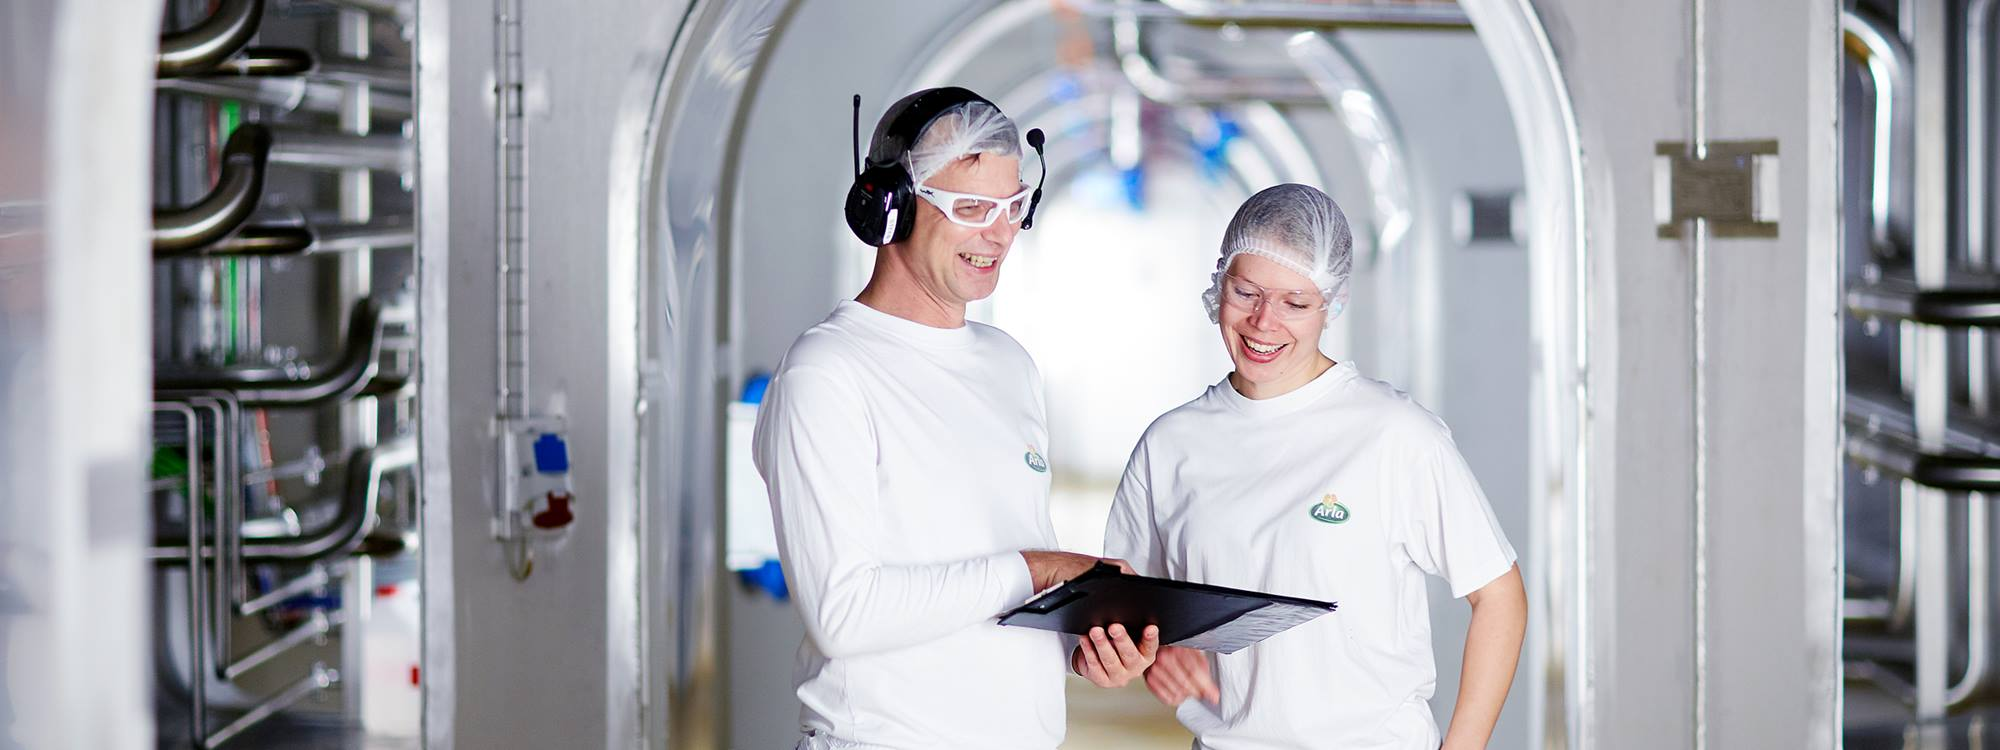 A proactive quality and food safety culture - Quality and food safety is everyone's responsibility